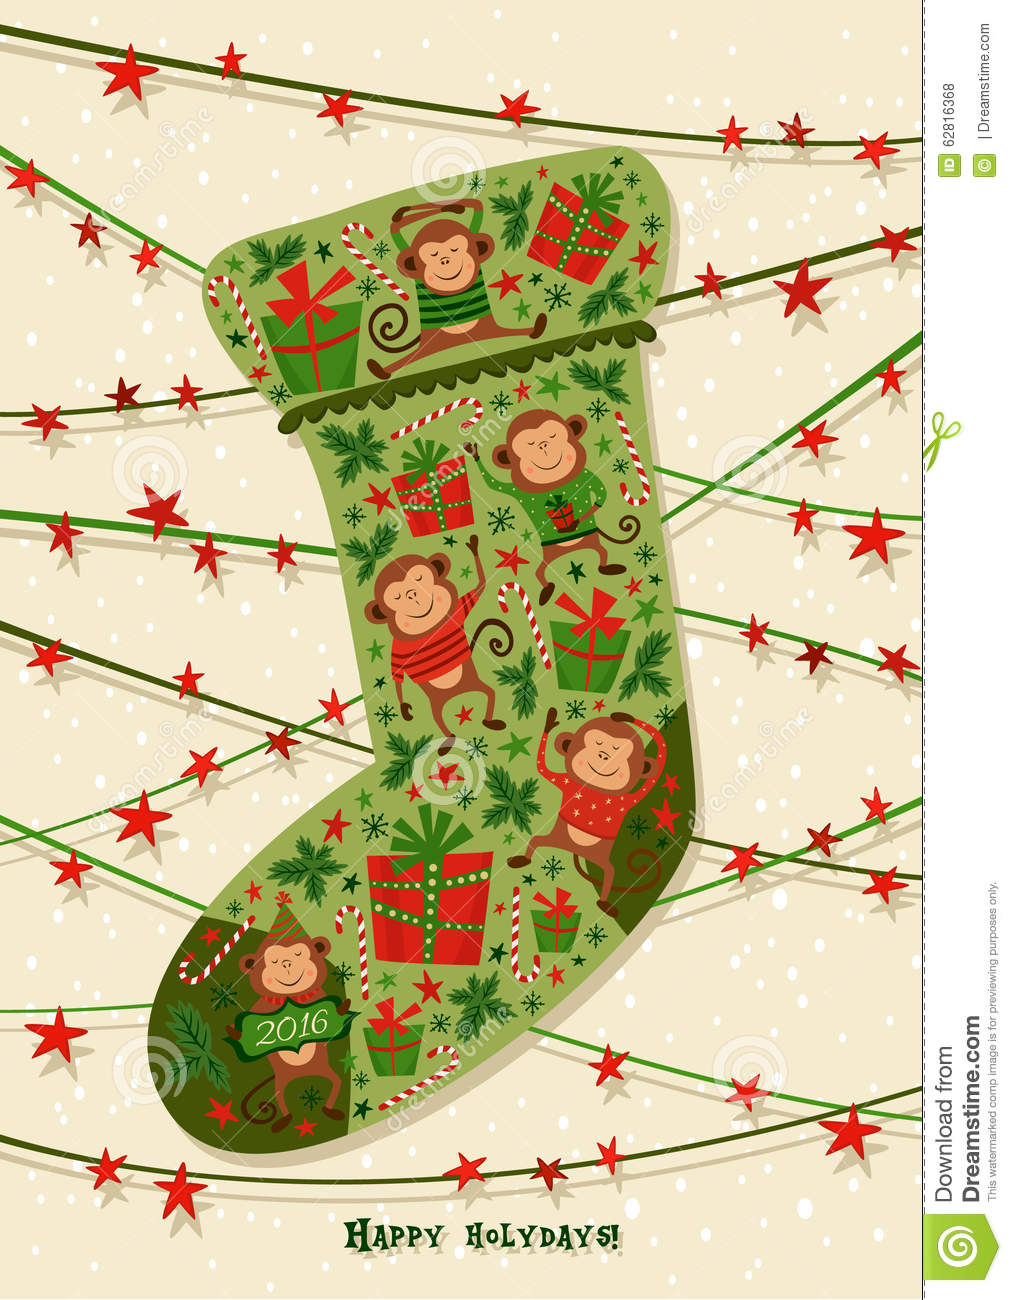 Christmas Calendar Illustration : New year card with christmas sock illustrations good for